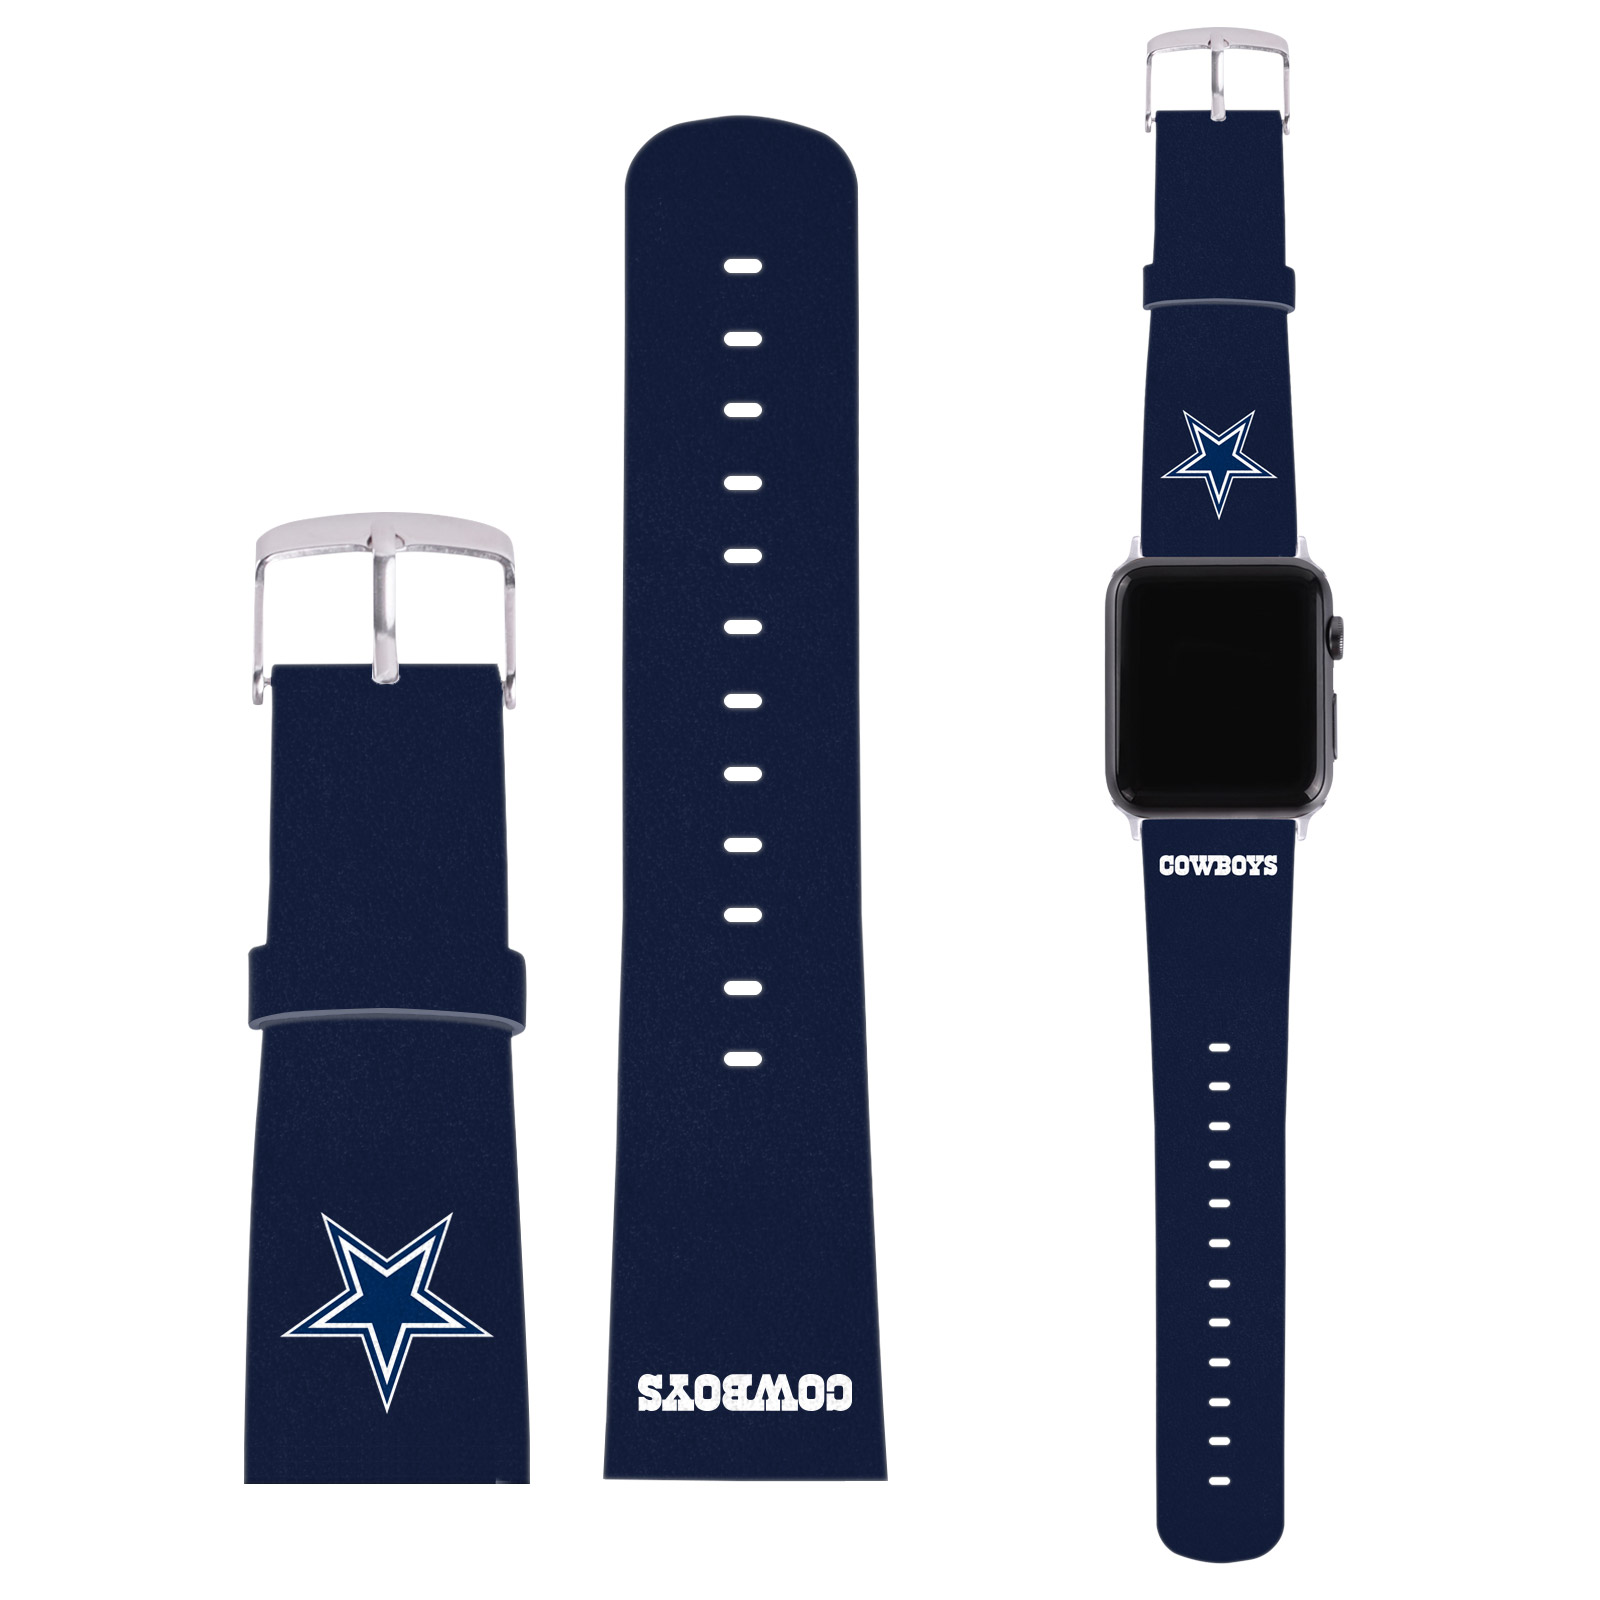 OFFICIAL NFL DALLAS COWBOYS LOGO BLUE LEATHER STRAP FOR ...